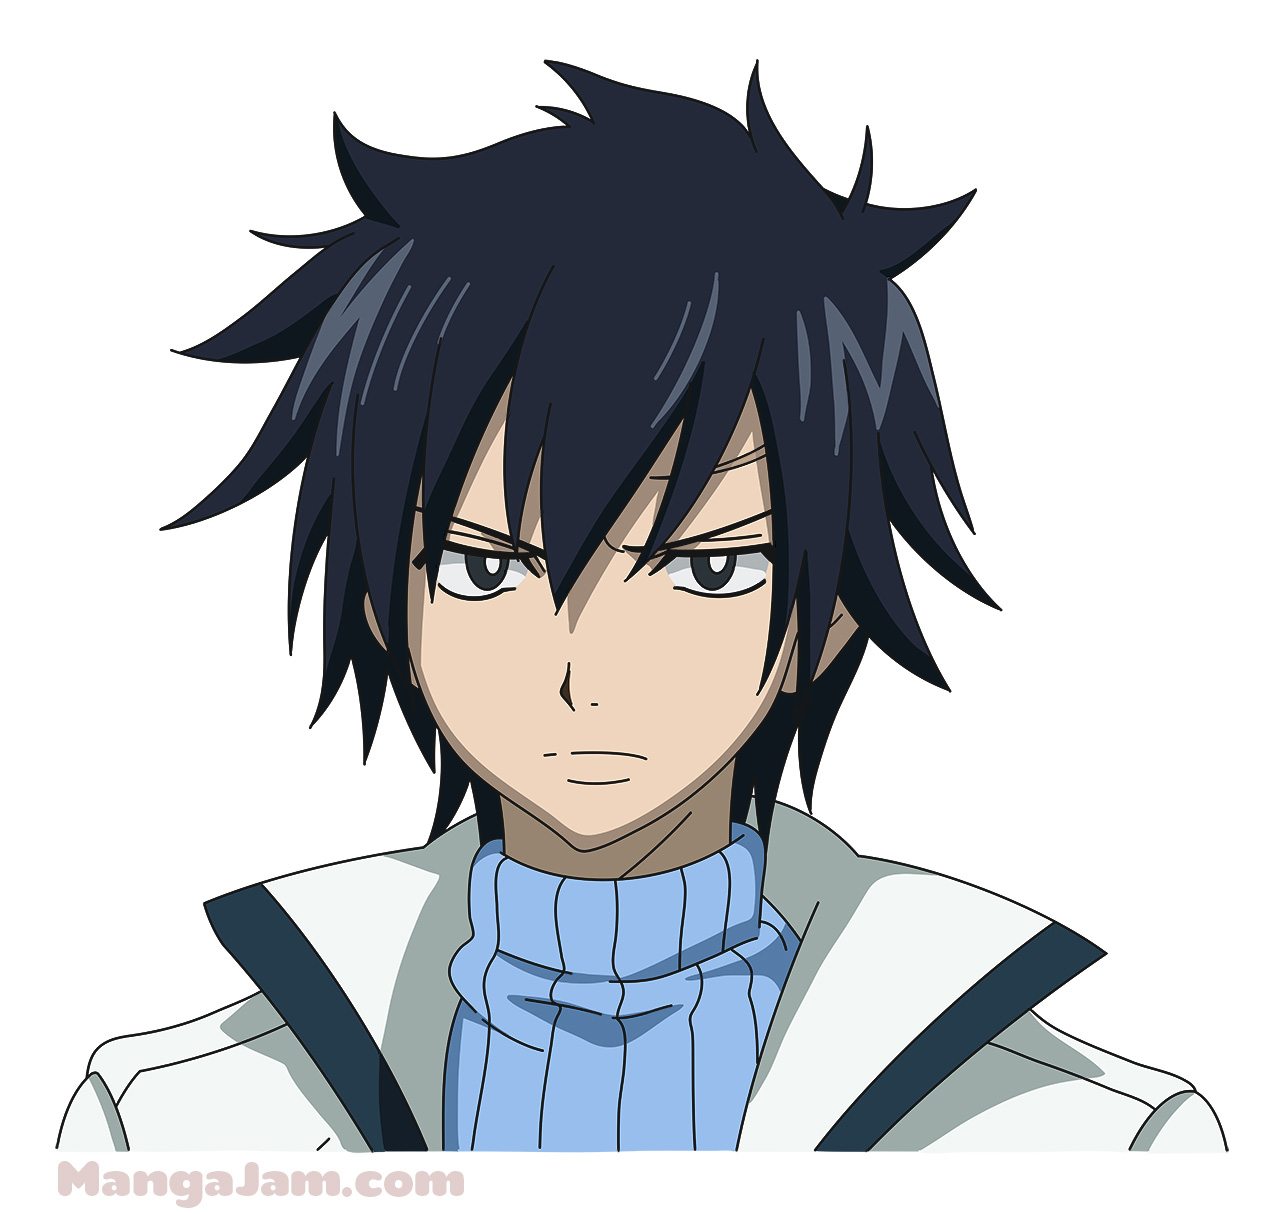 How to Draw Gray Fullbuster from Fairy Tail - Mangajam.com